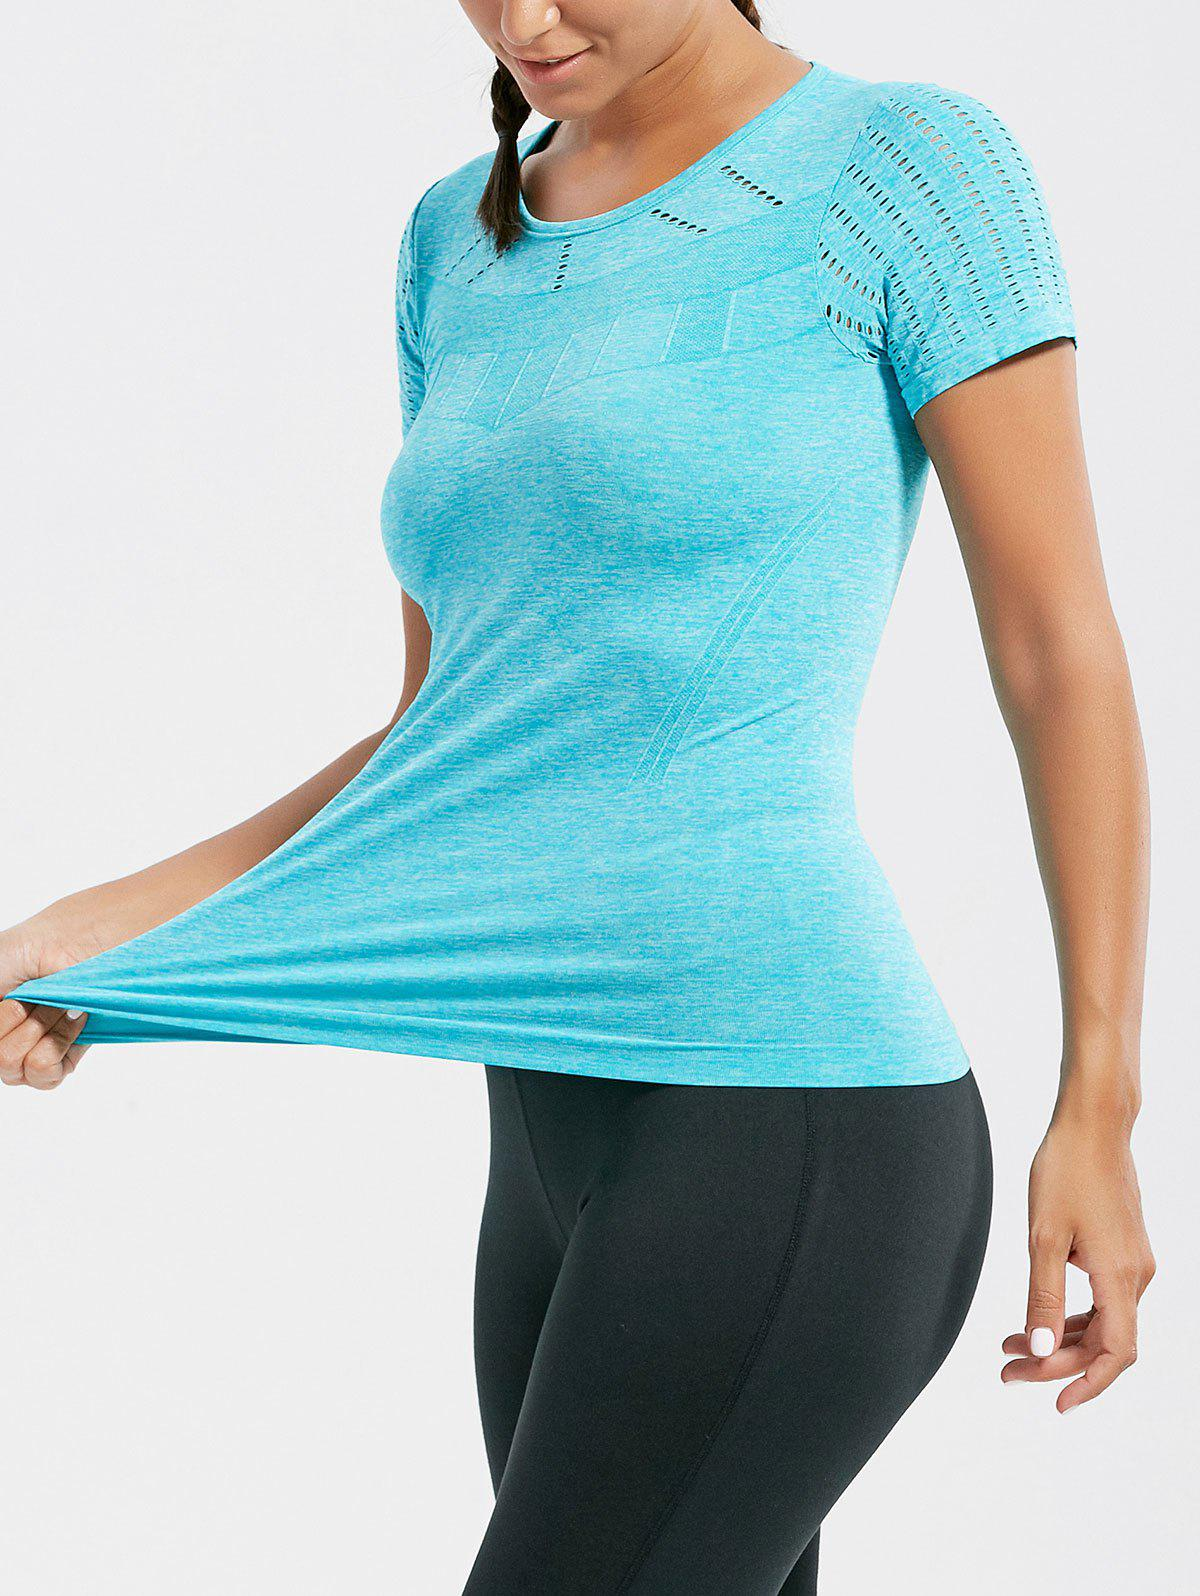 Breathable Ripped Workout T-shirt - LAKE BLUE S